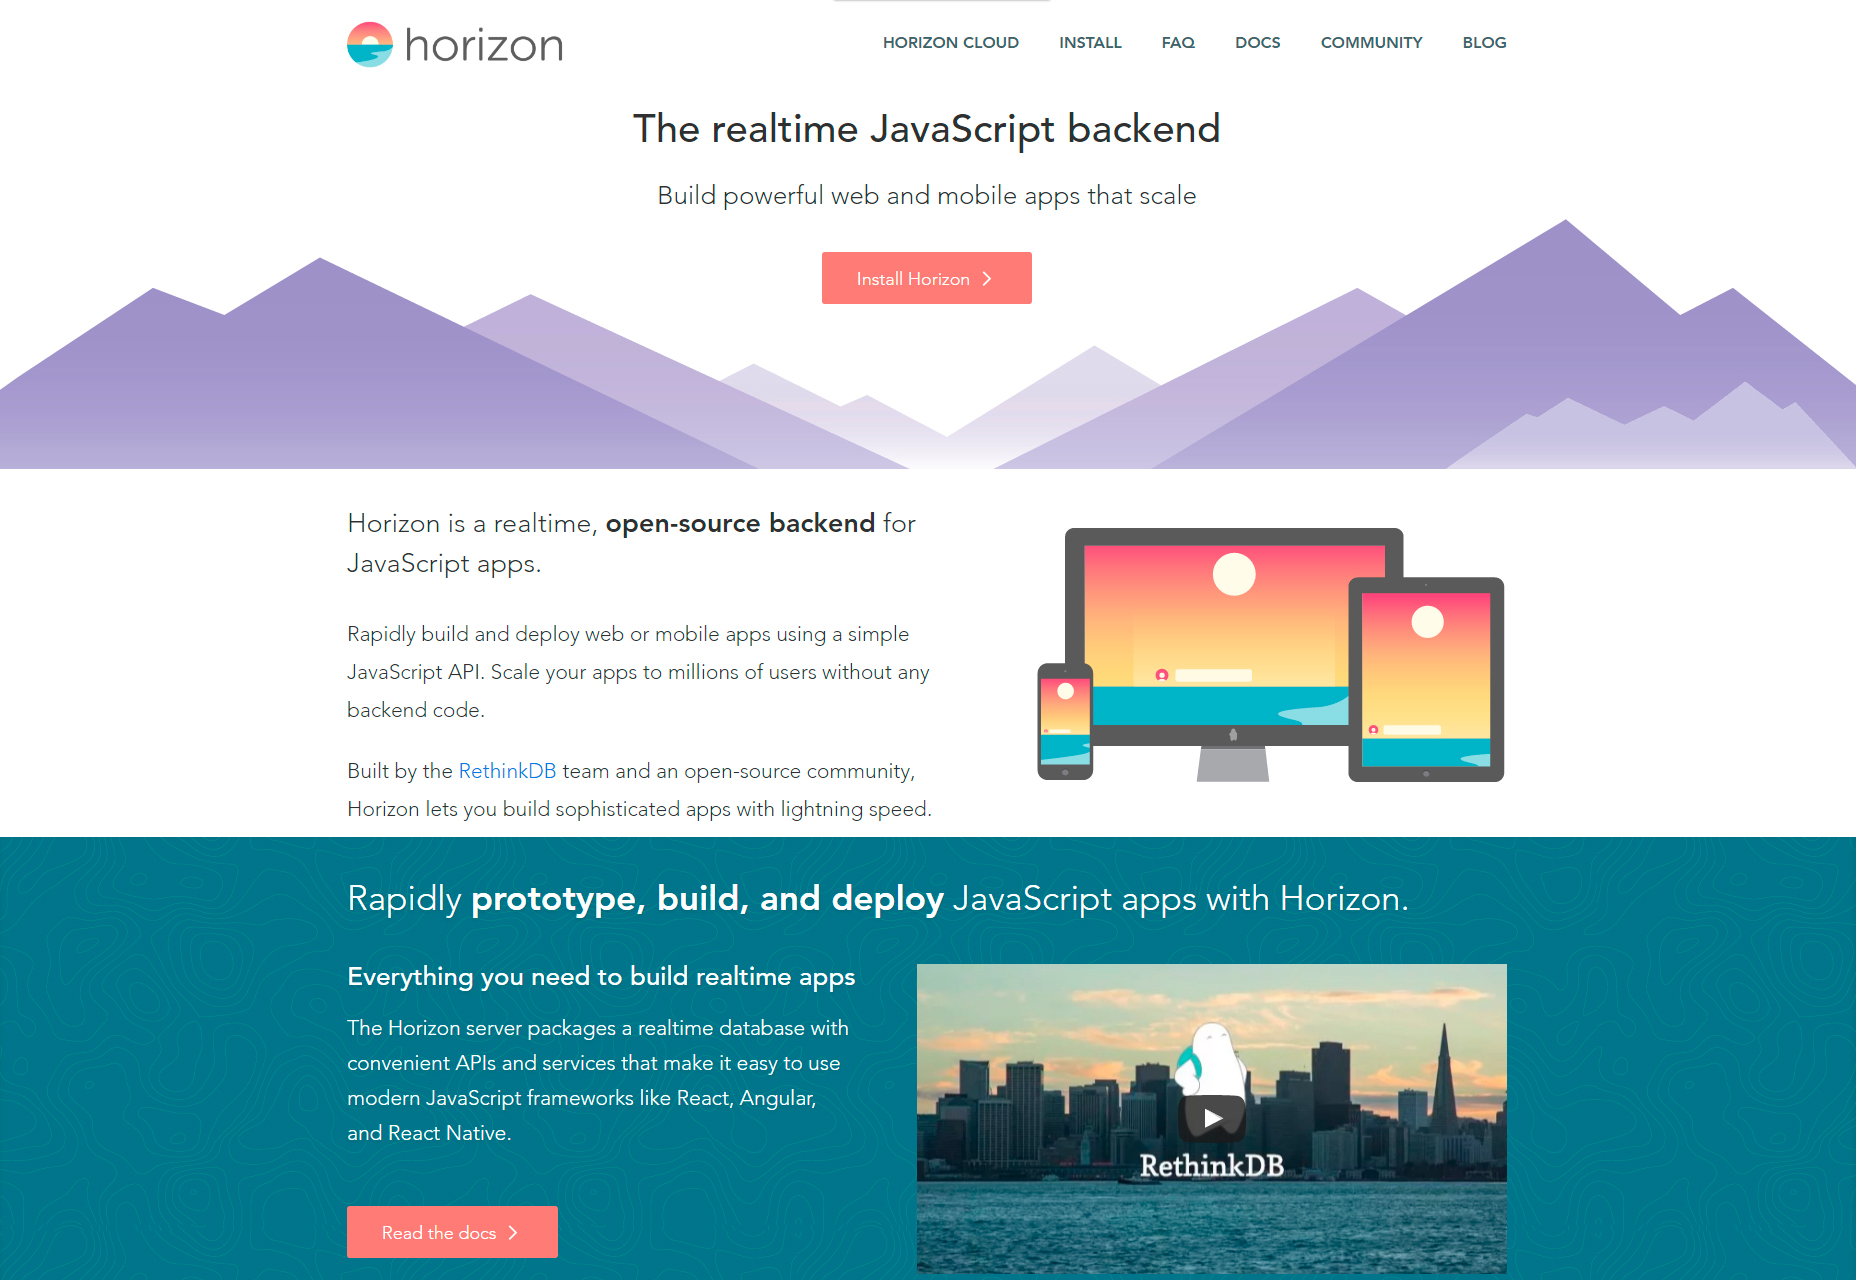 horizon-realtime-open-source-javascript-backend